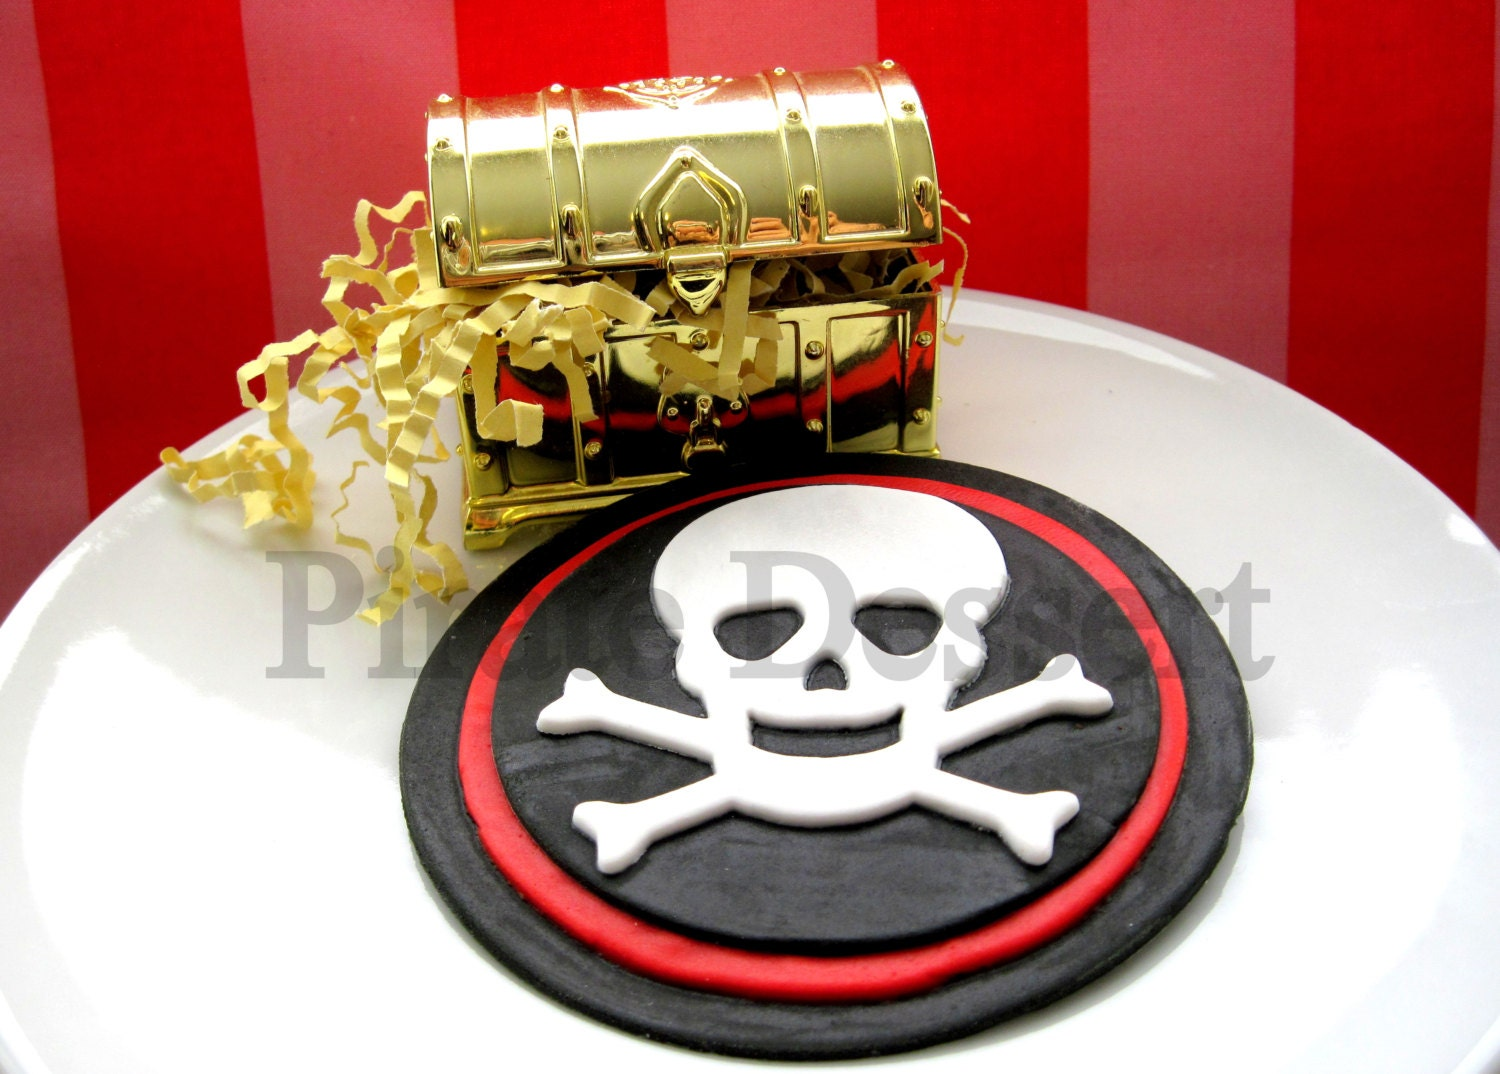 Edible Cake Images Pirate : Edible Cake Topper PIRATE SKULL and Cross Bones Jolly Roger